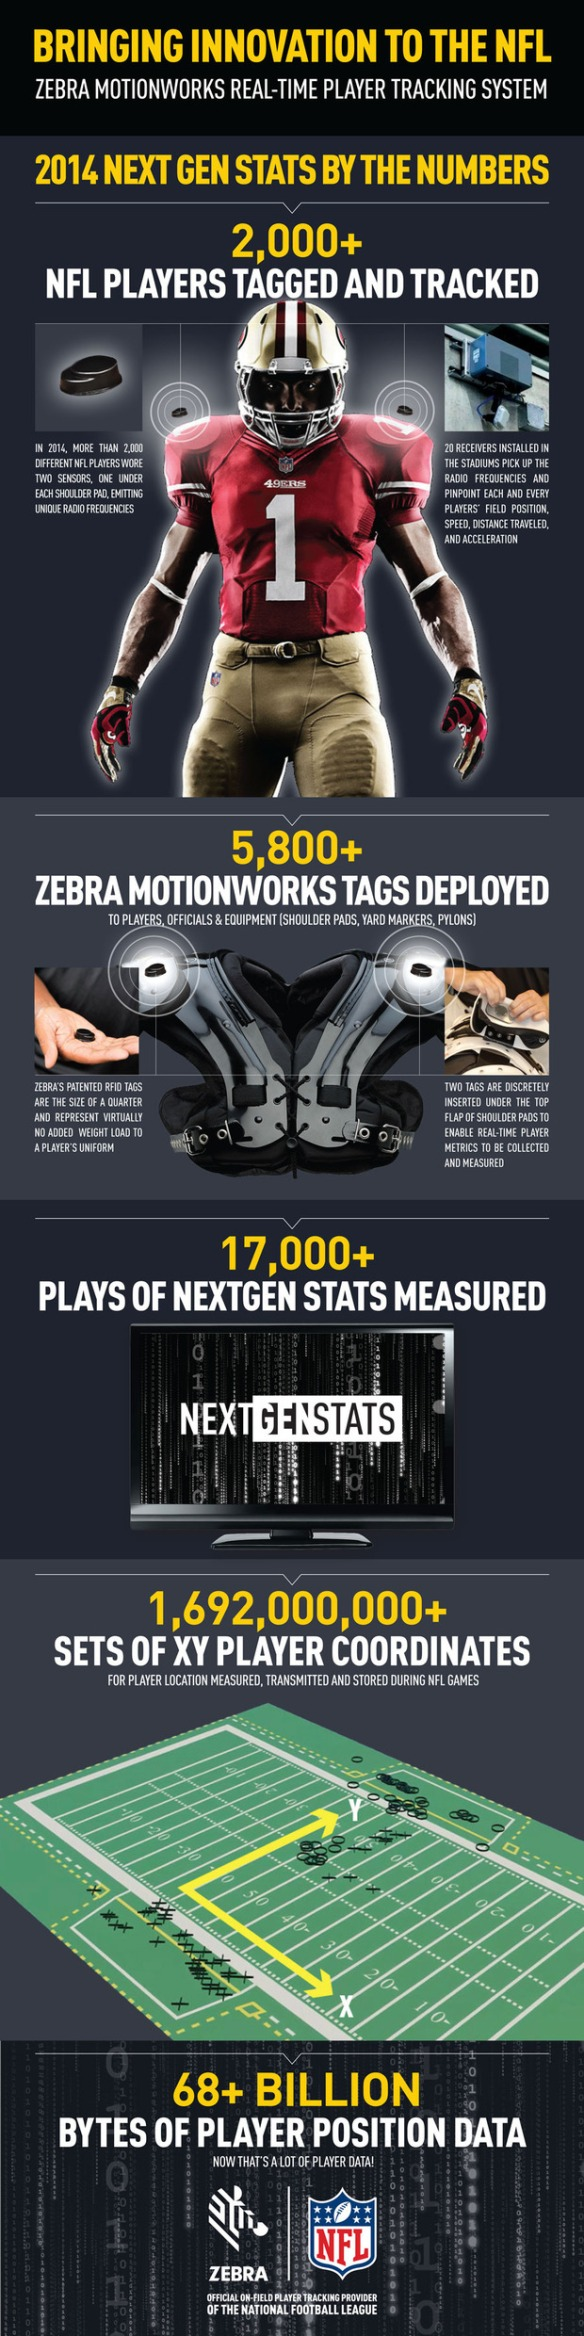 nfl_tech_infographic-100612792-large.idge